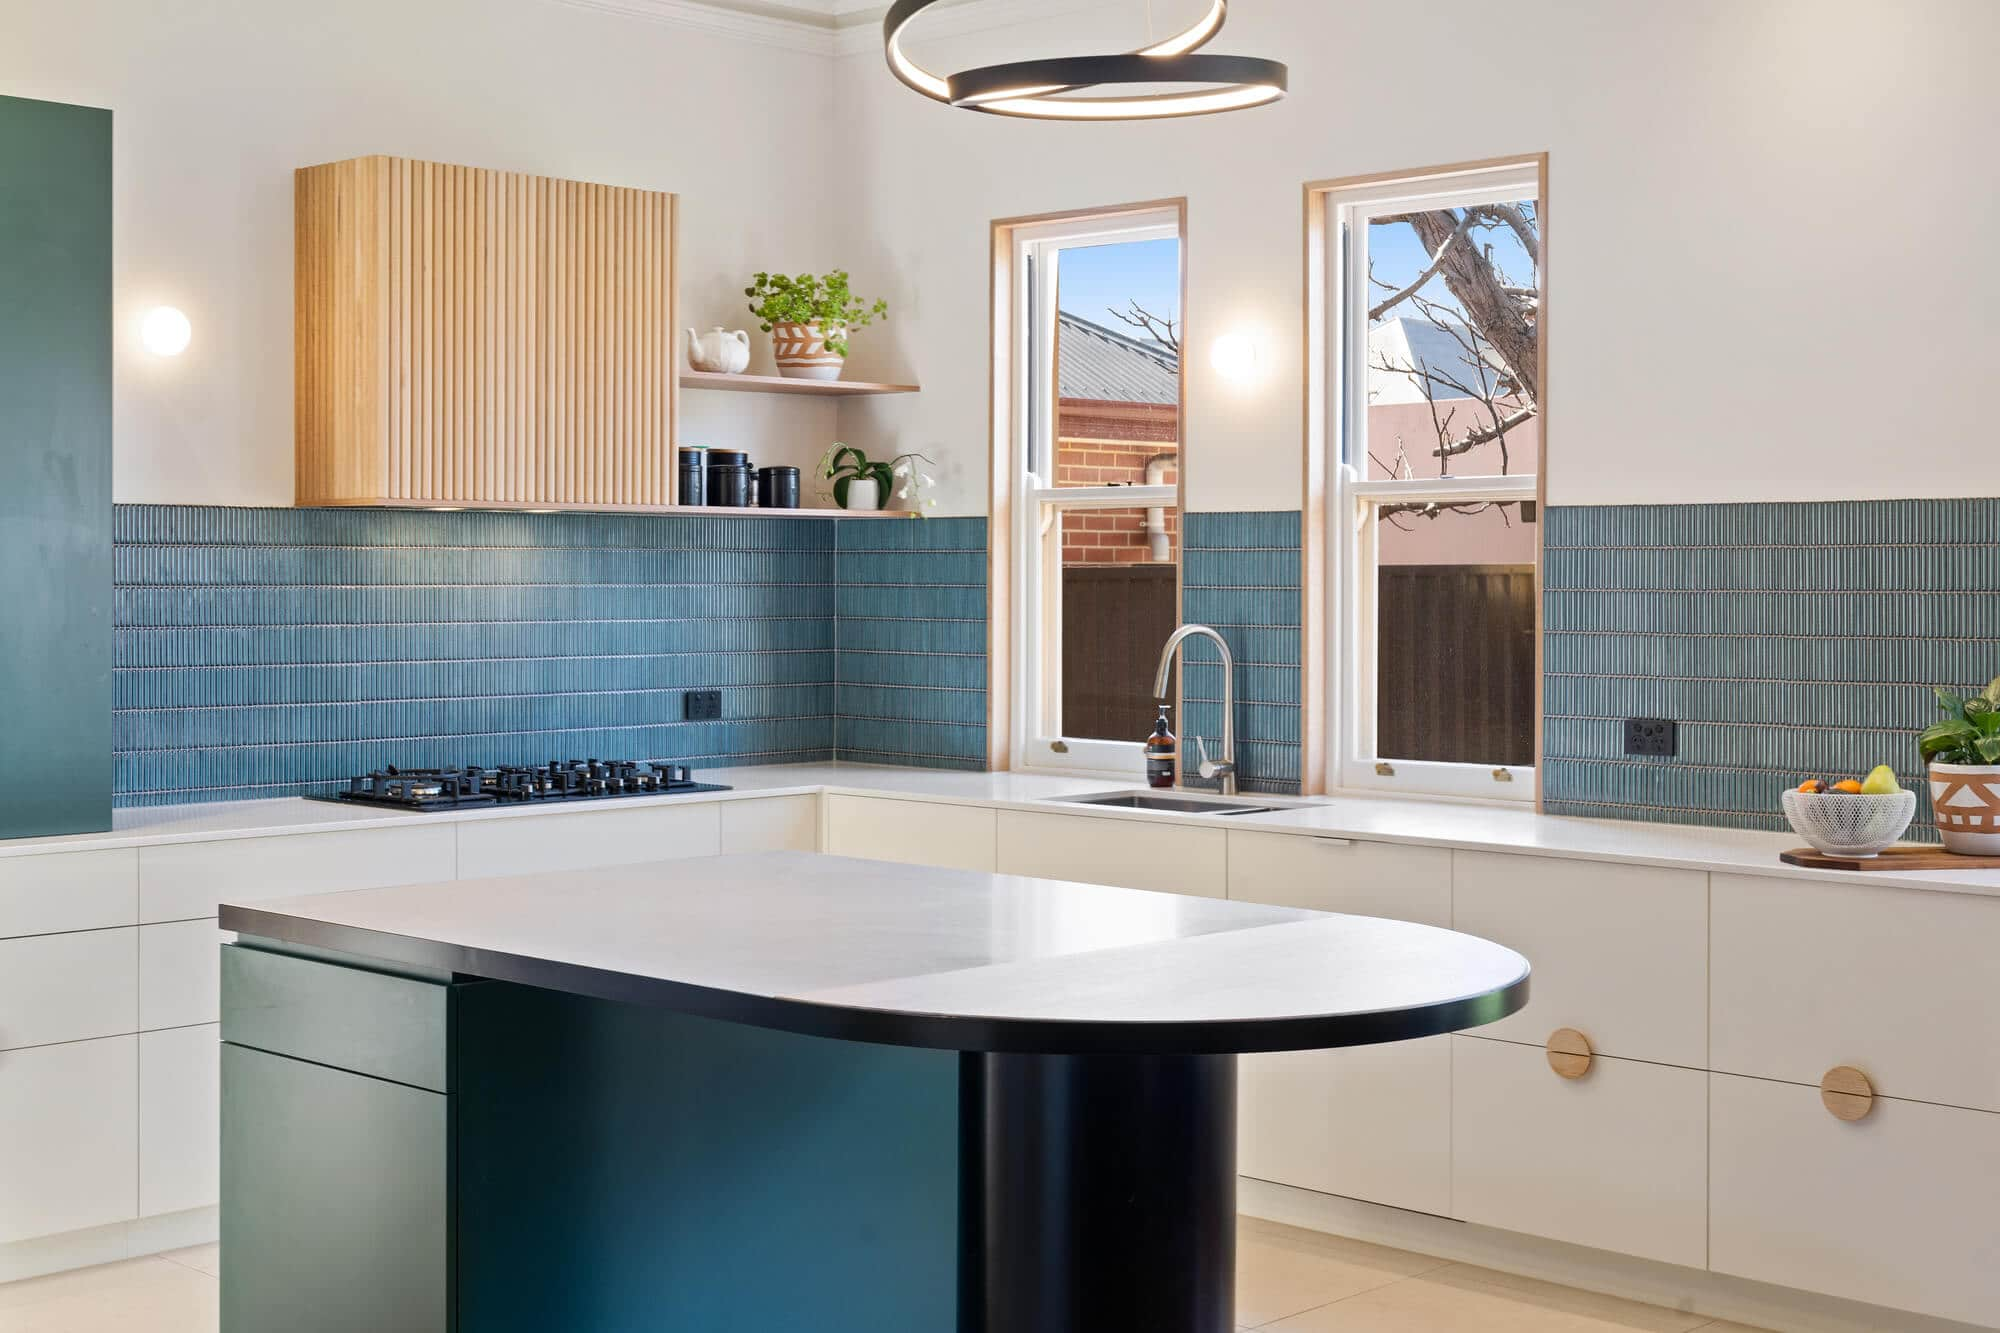 modern turquoise kitchen renovation with island